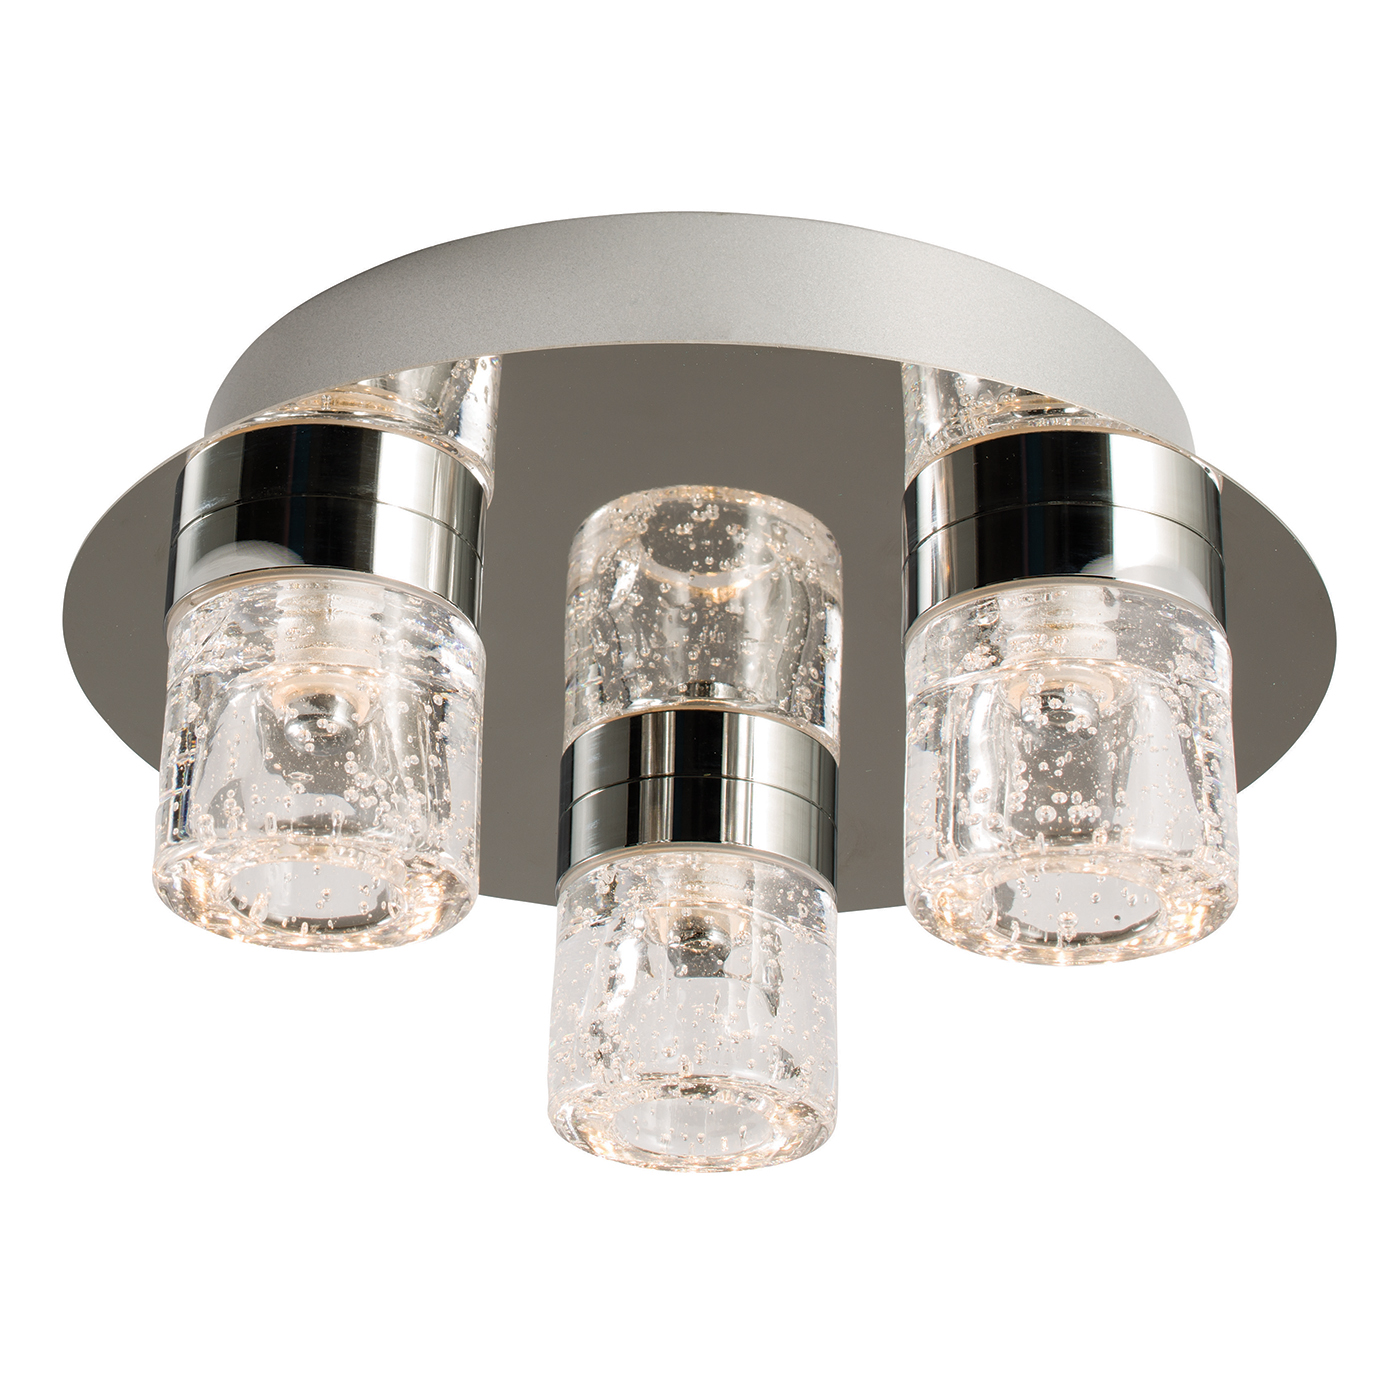 Endon Imperial flush LED bathroom ceiling light IP44 3x 4W chrome glass bubbles